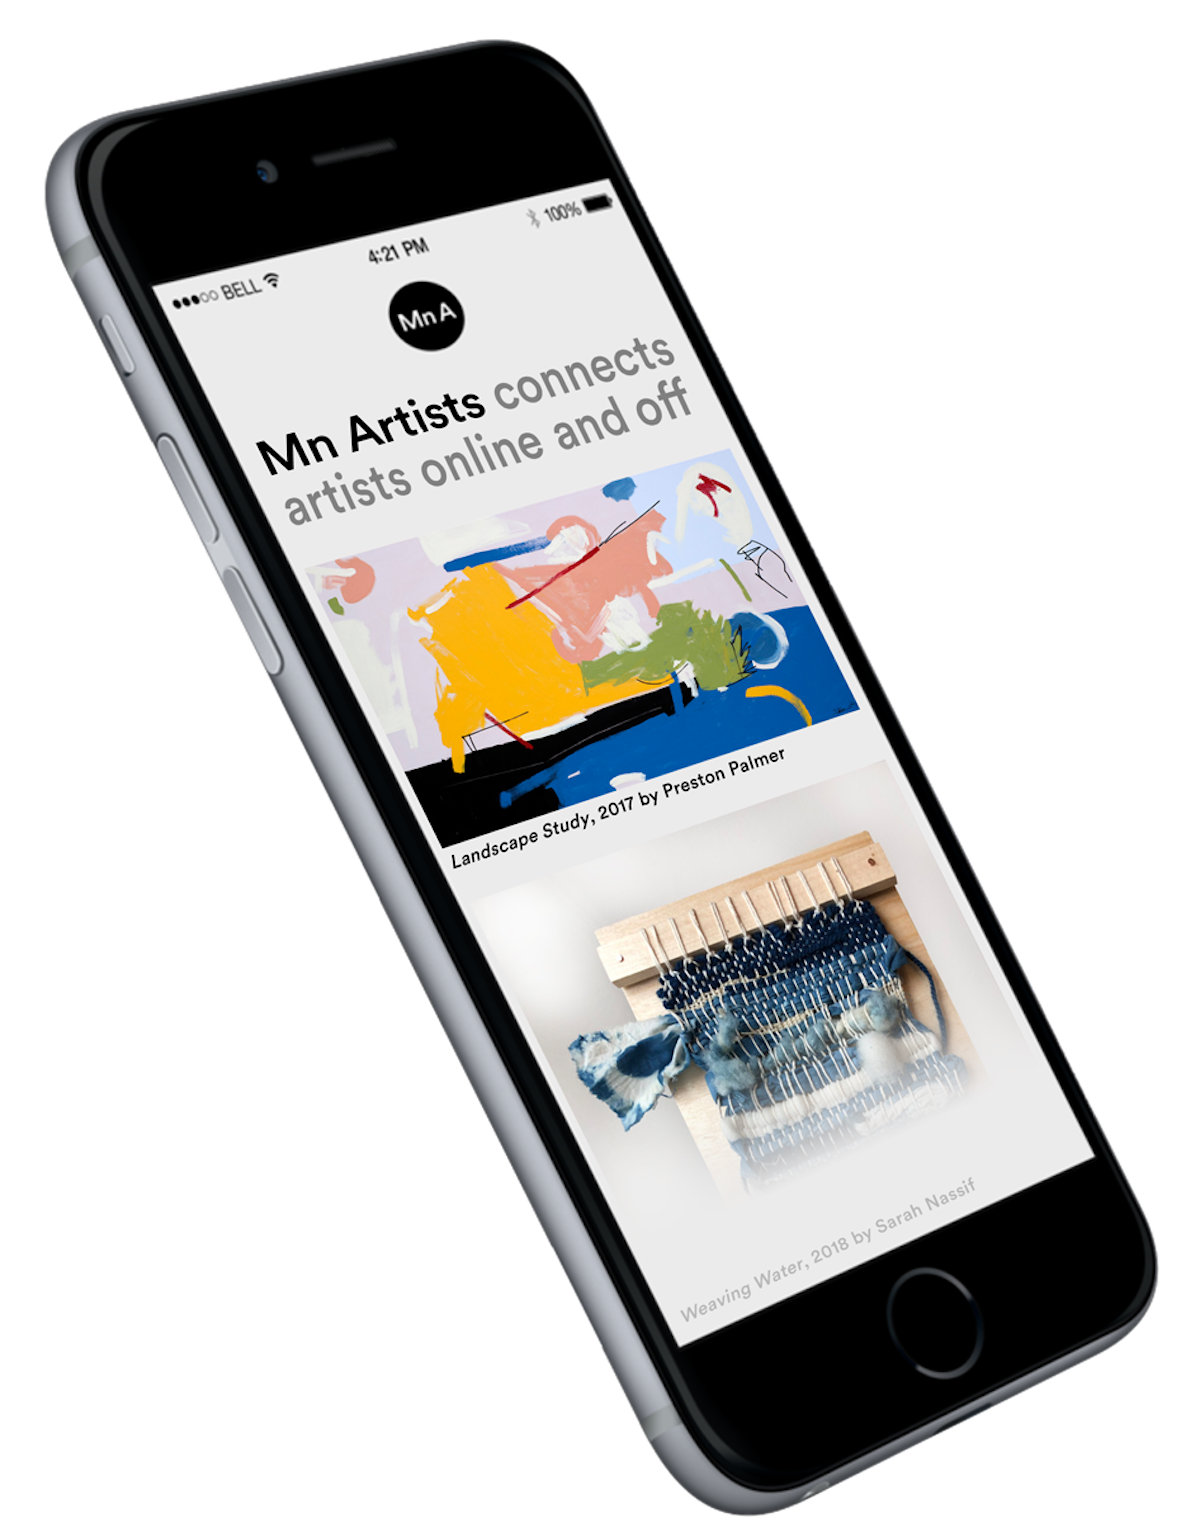 iphone rendering with images of art